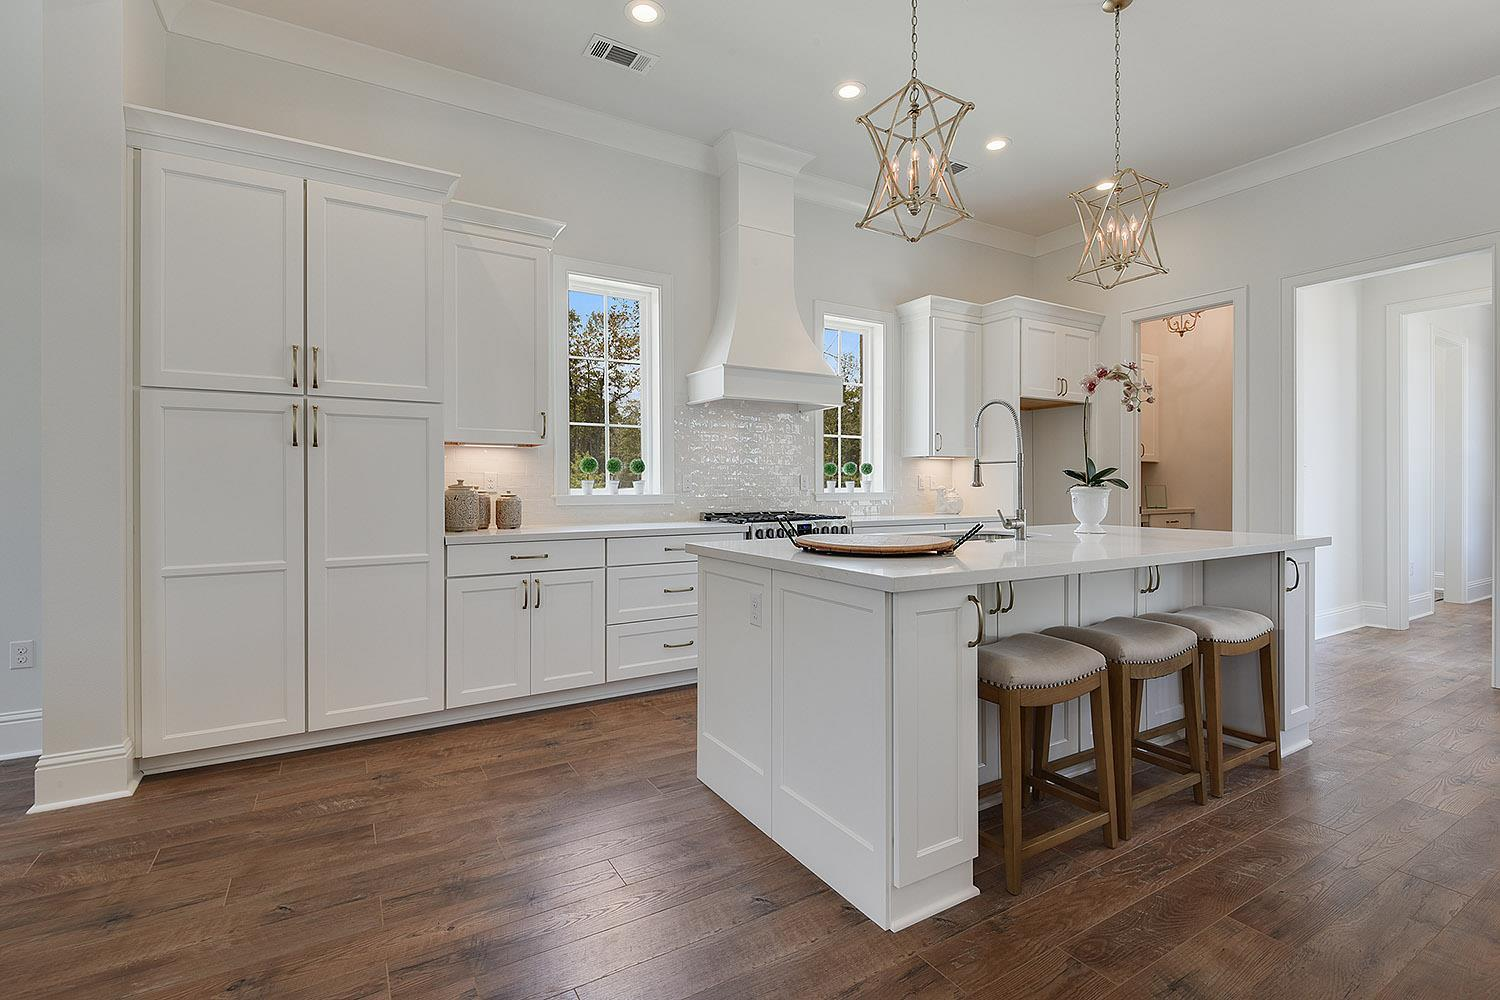 Kitchen featured in the Katherine By Highland Homes in New Orleans, LA